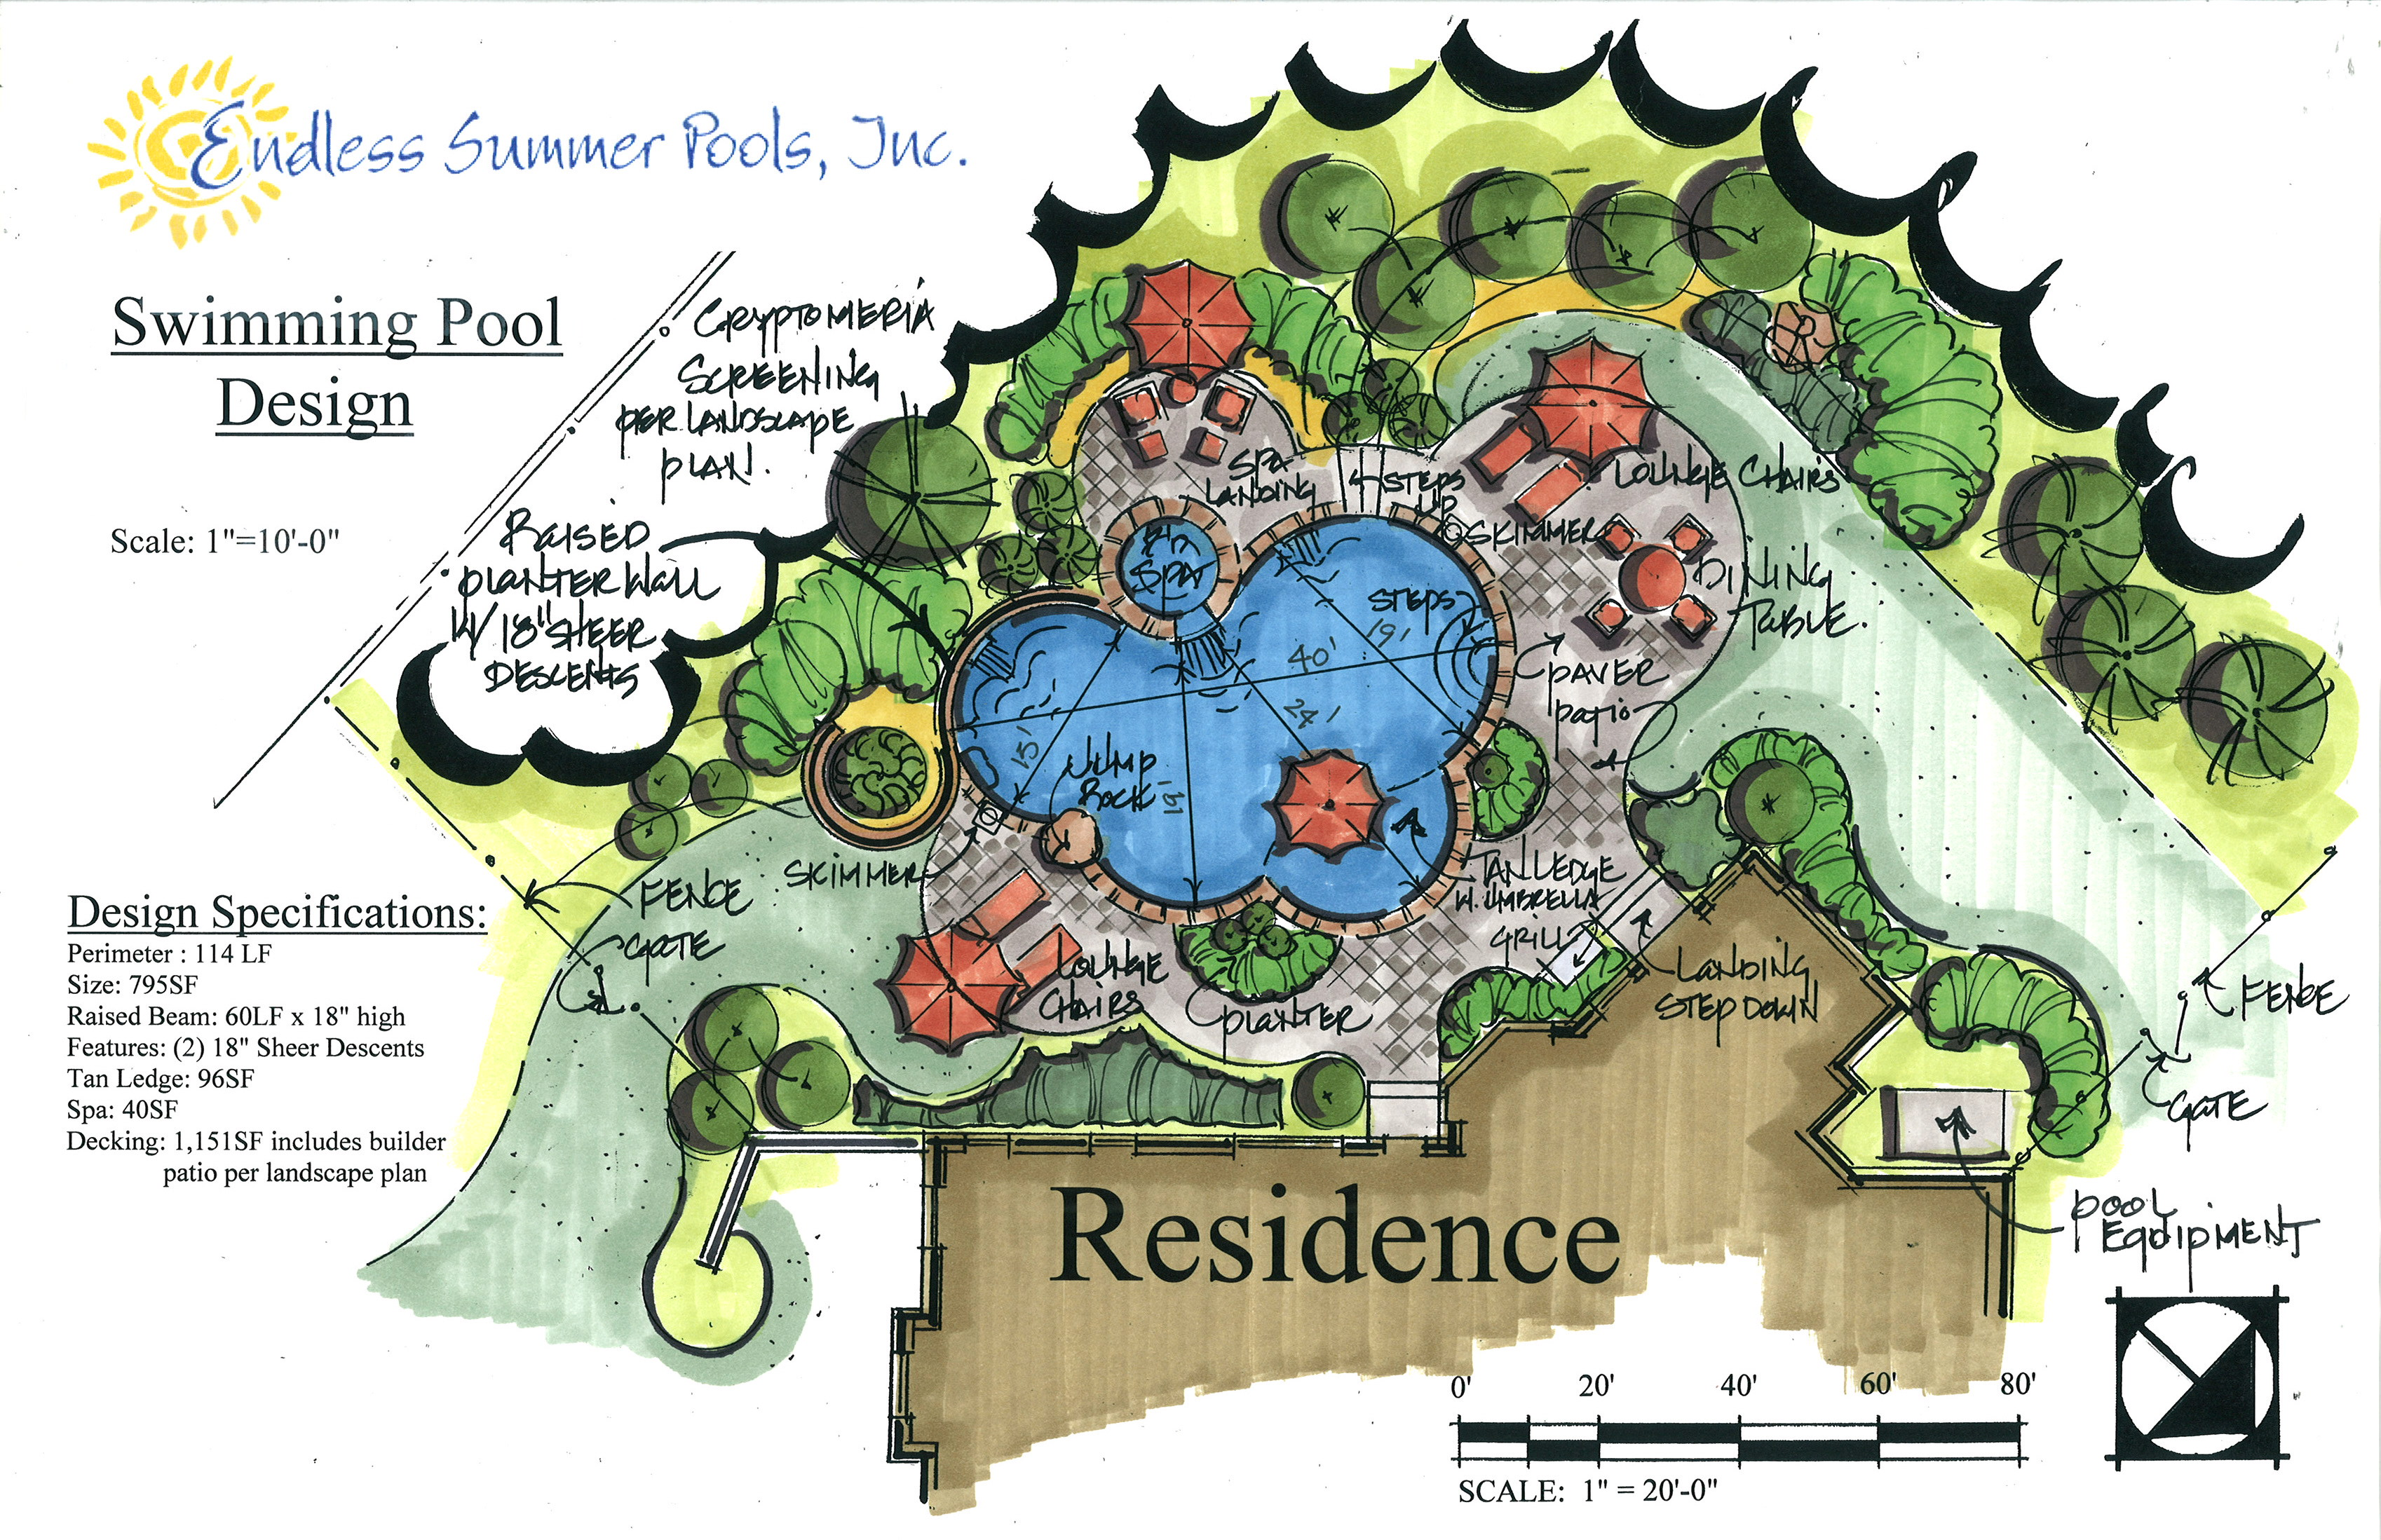 Endless summer pools metro atlanta for Pool design drawings